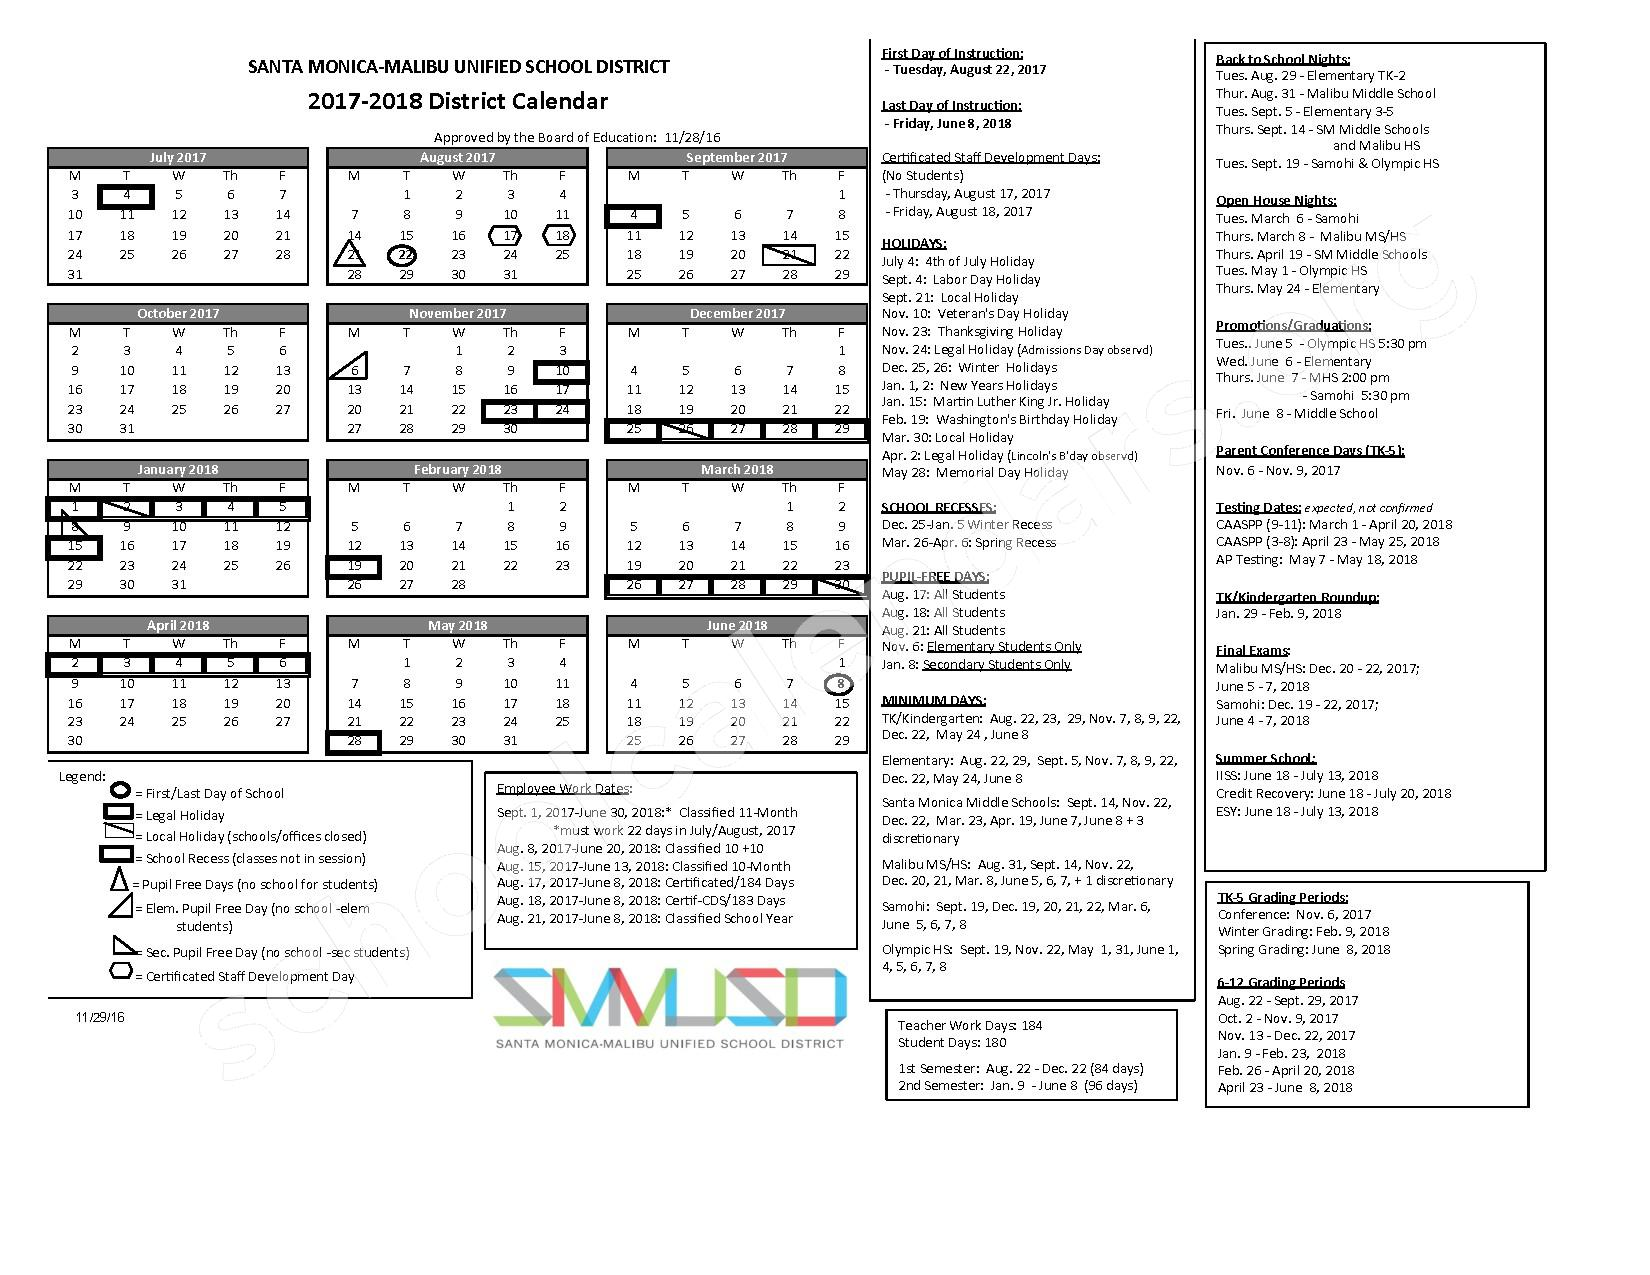 2017 - 2018 School Calendar – Santa Monica-Malibu Unified School District – page 1